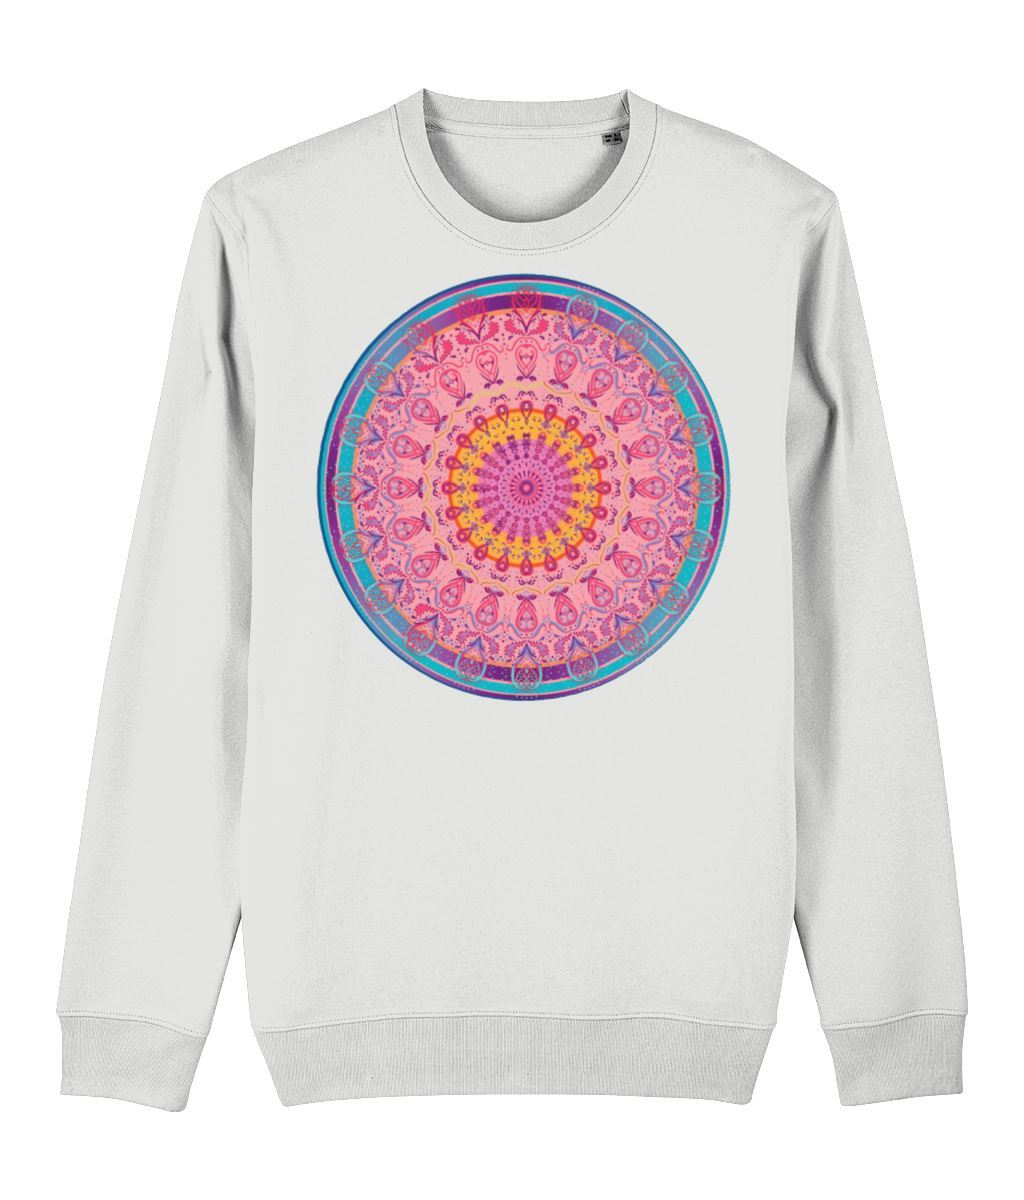 Bohemian Circle Sweatshirt Clothing IndianBelieves White X-Small